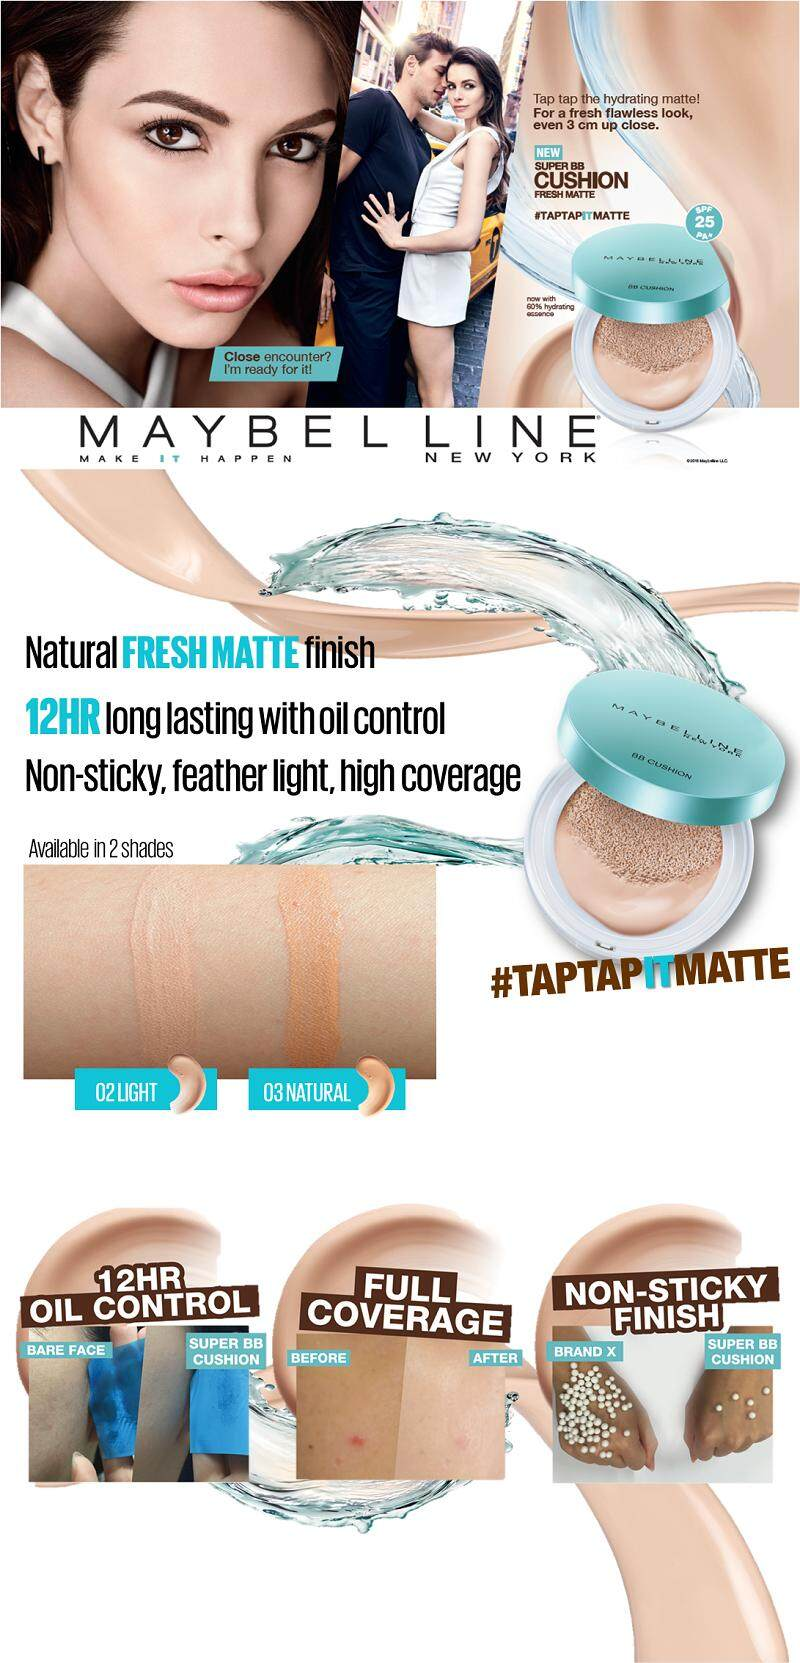 Buy Maybelline Super Bb Cushion Fresh Matte Deals For Sand Beige Related Image